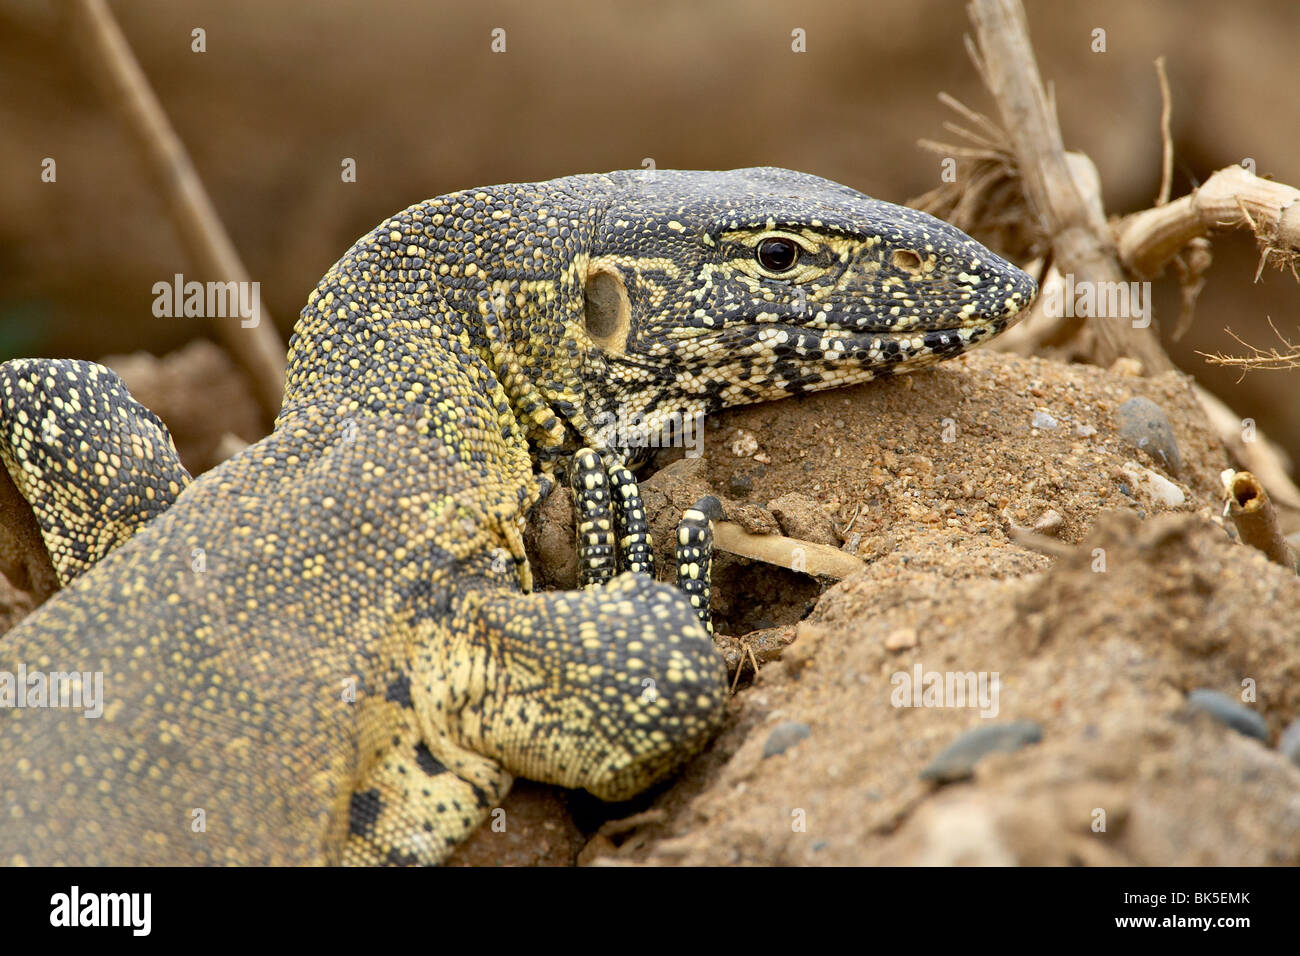 Water monitor (Varanus niloticus), Kruger National Park, South Africa, Africa Stock Photo